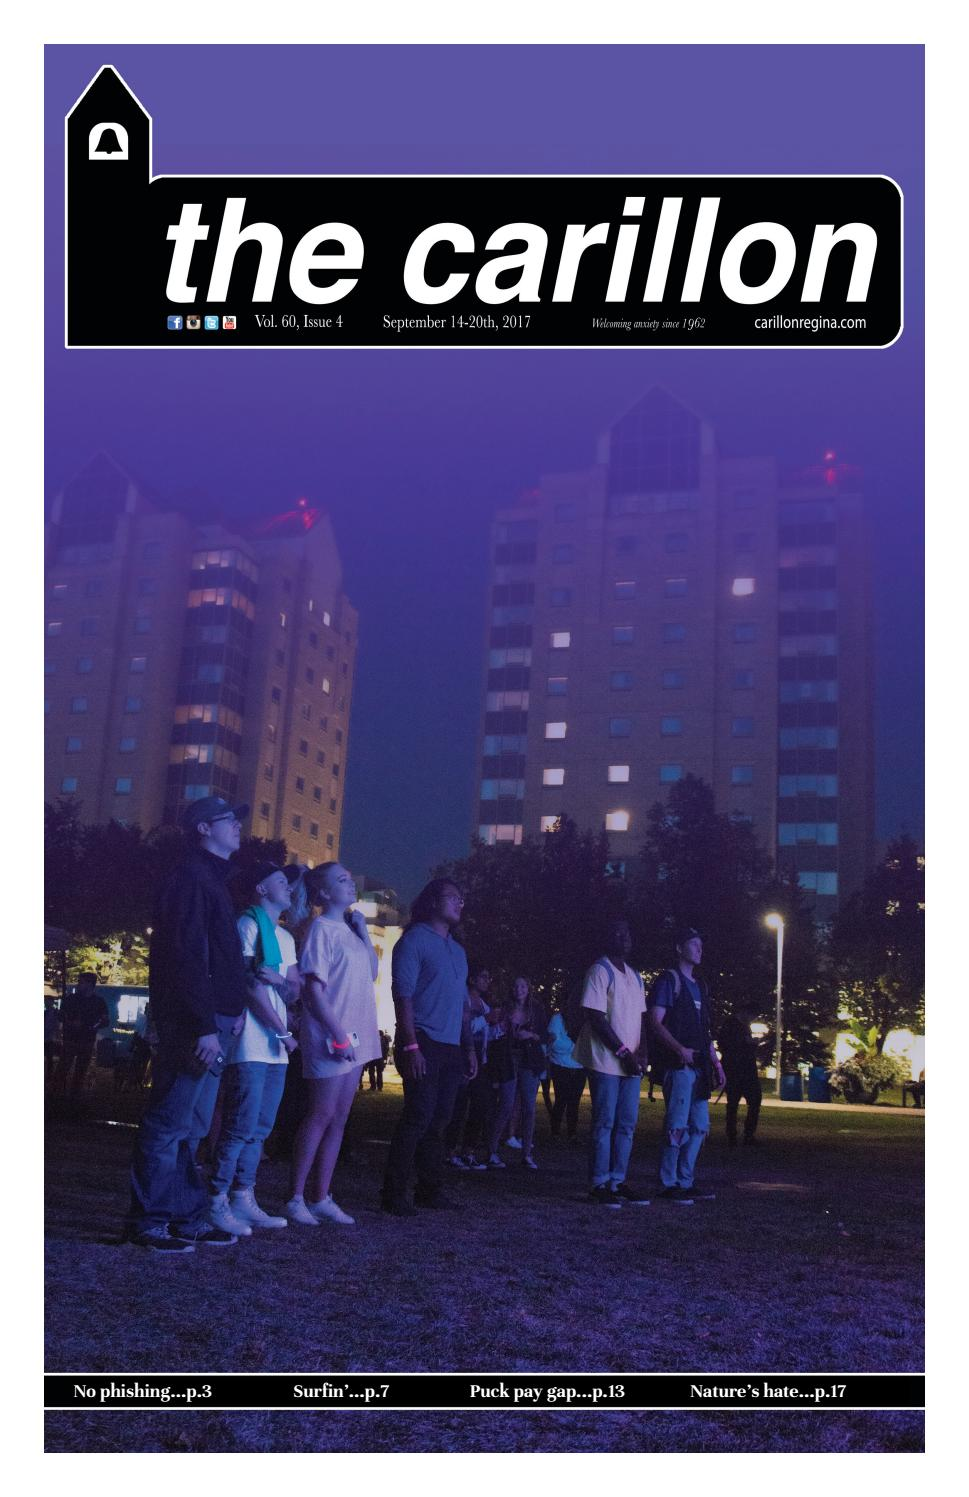 Carillon (Vol  60 Iss  4) by The Carillon Newspaper - issuu